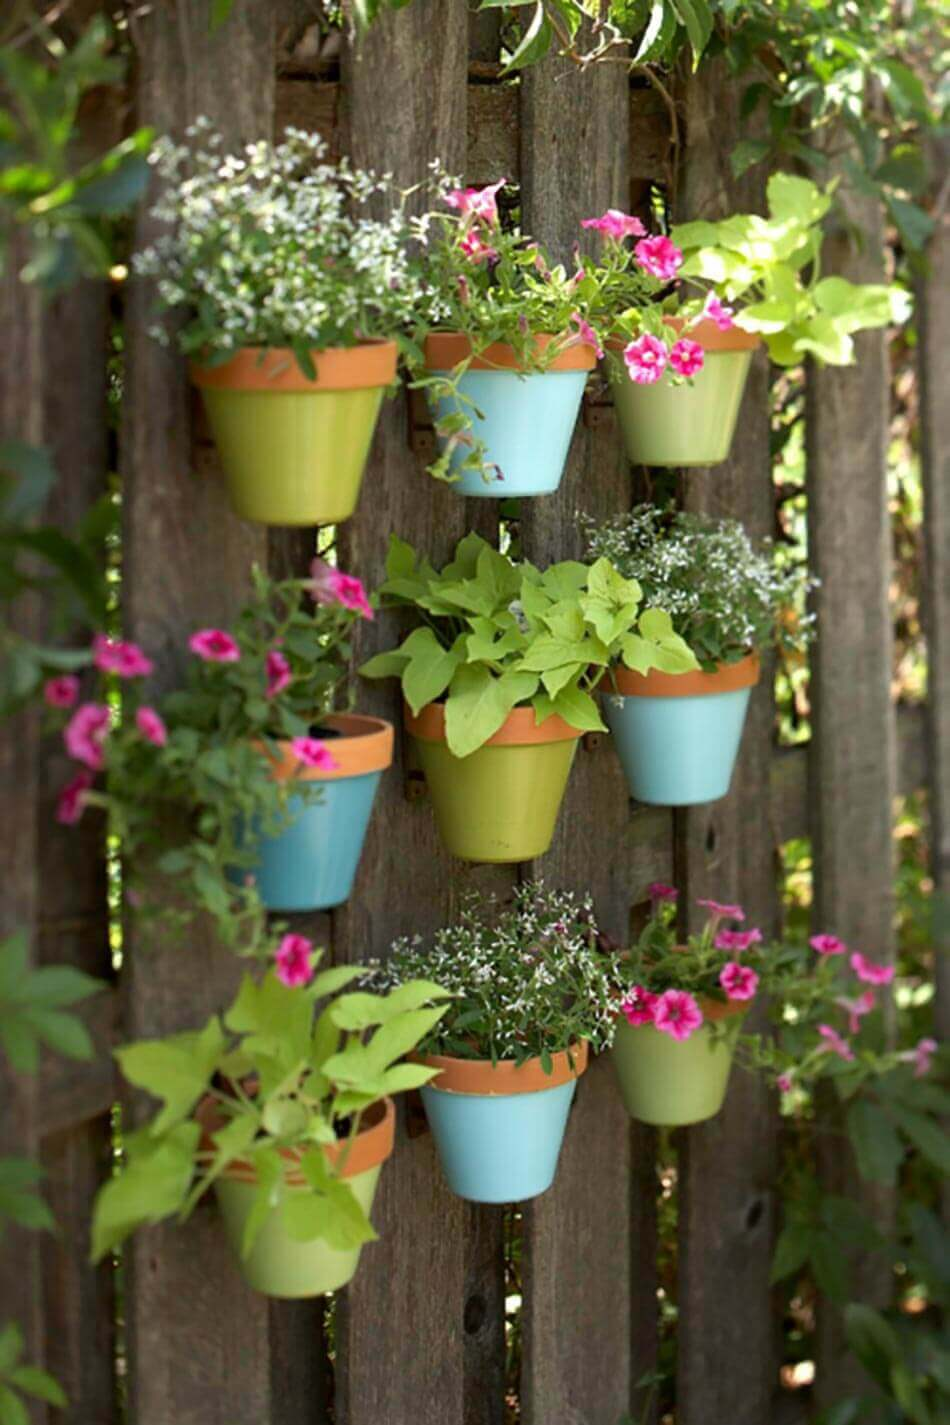 Garden Fence Decoration Idea with Wall Planters